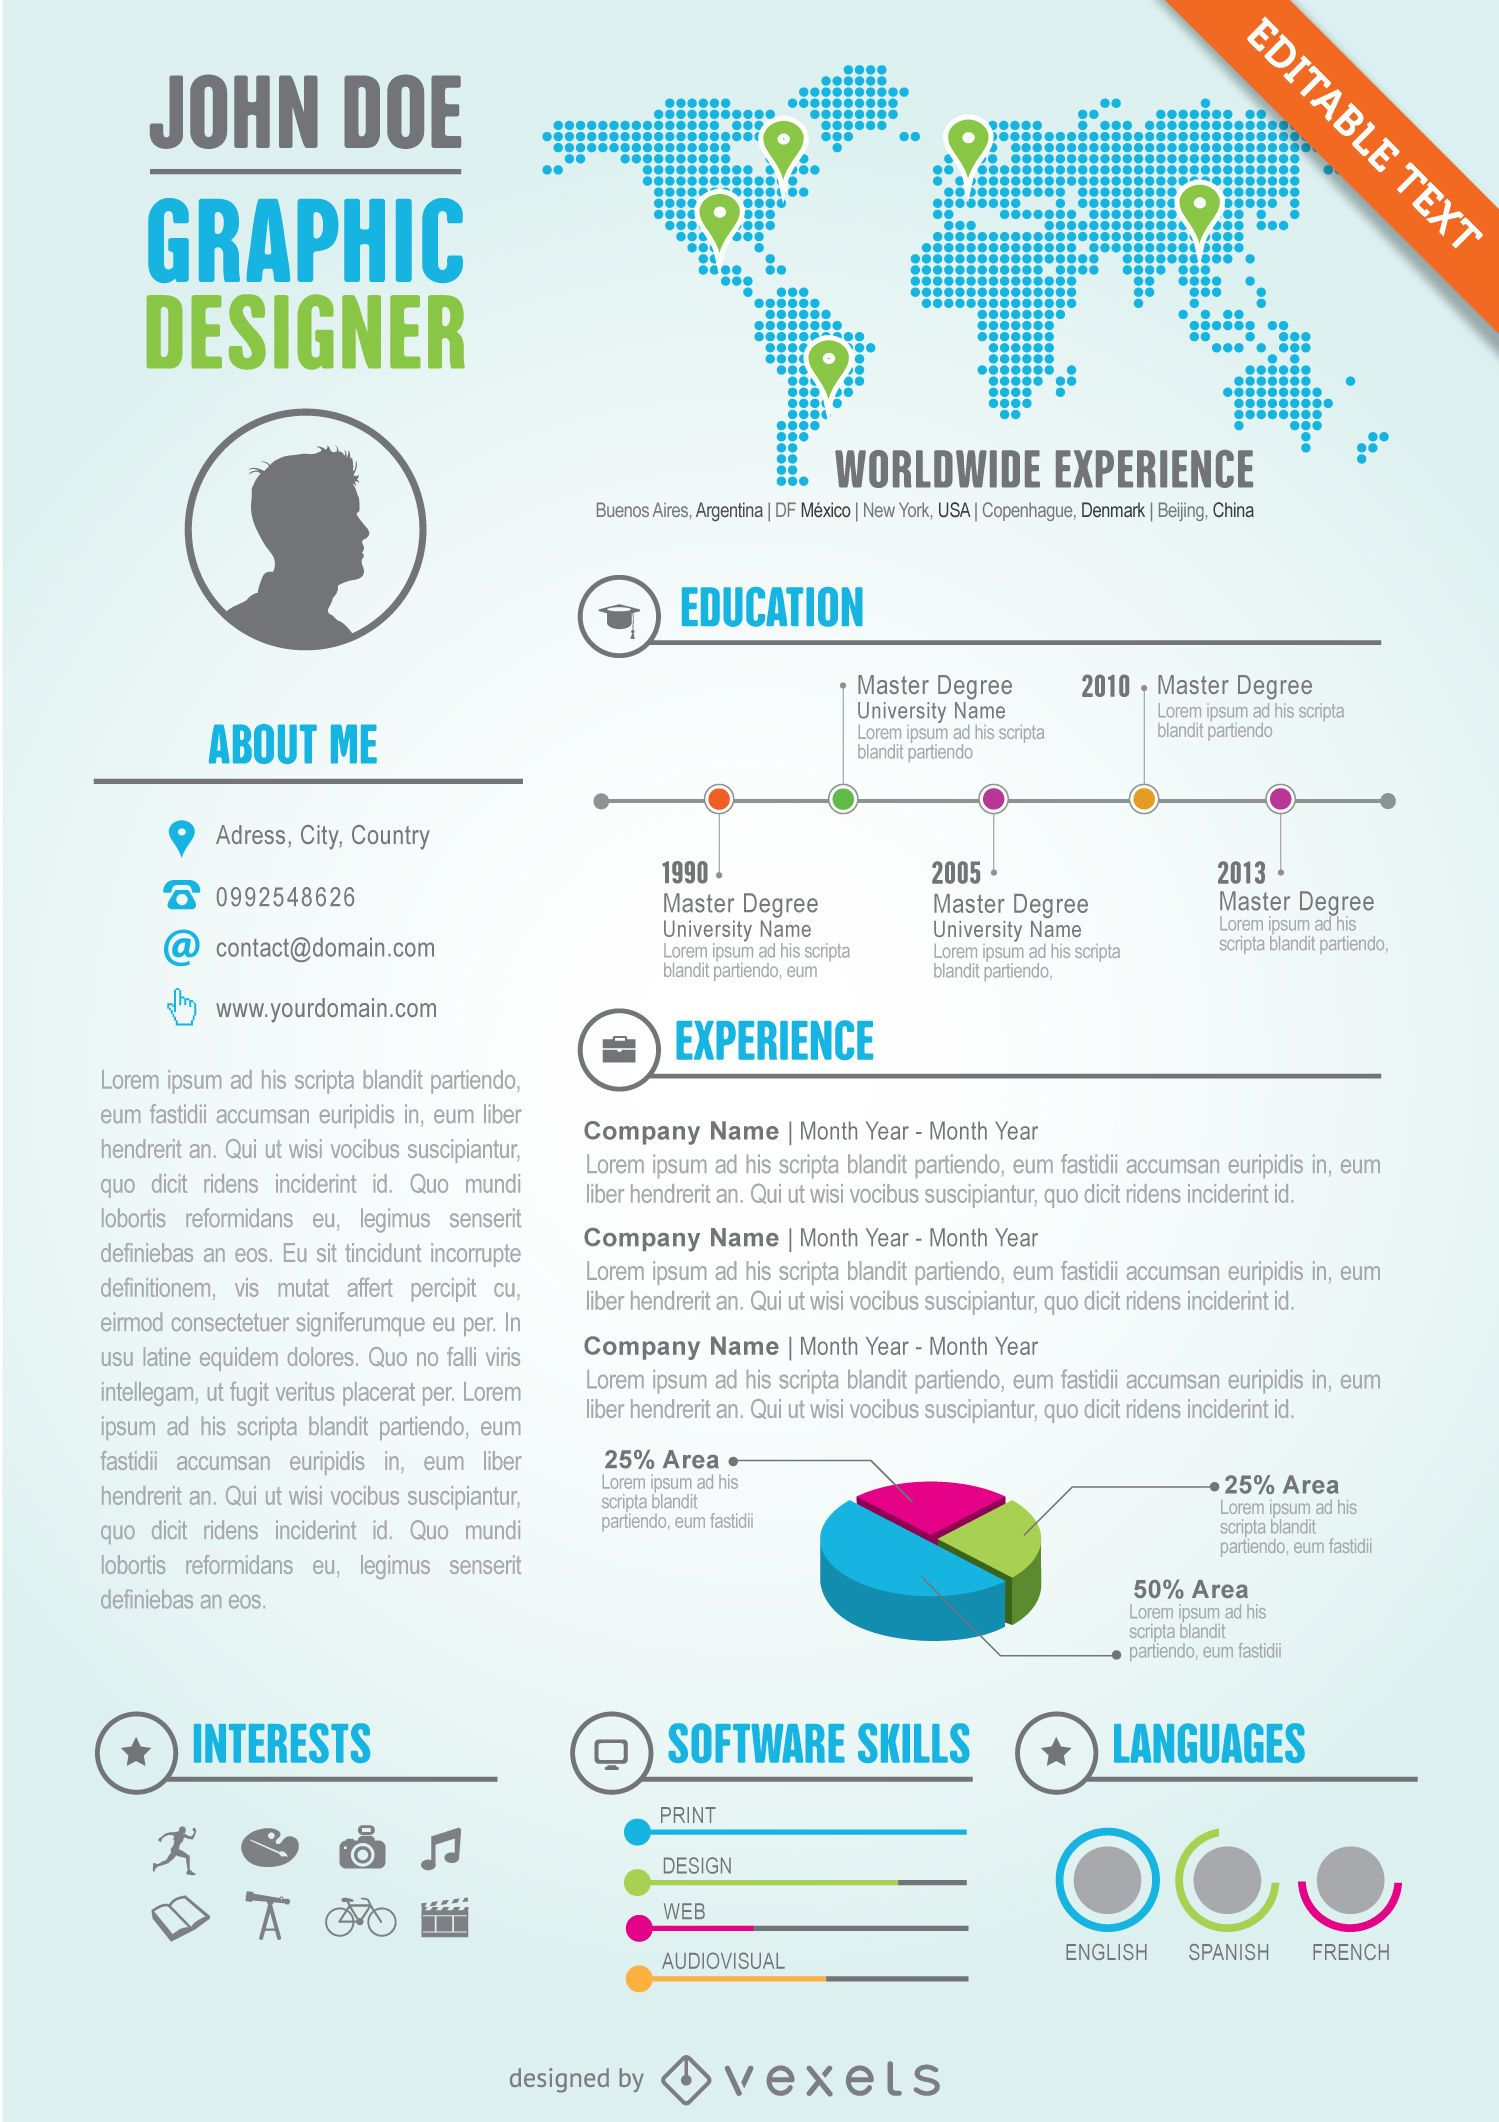 Graphic Designer Editable Resume Cv Template Vector Download - Timeline resume template